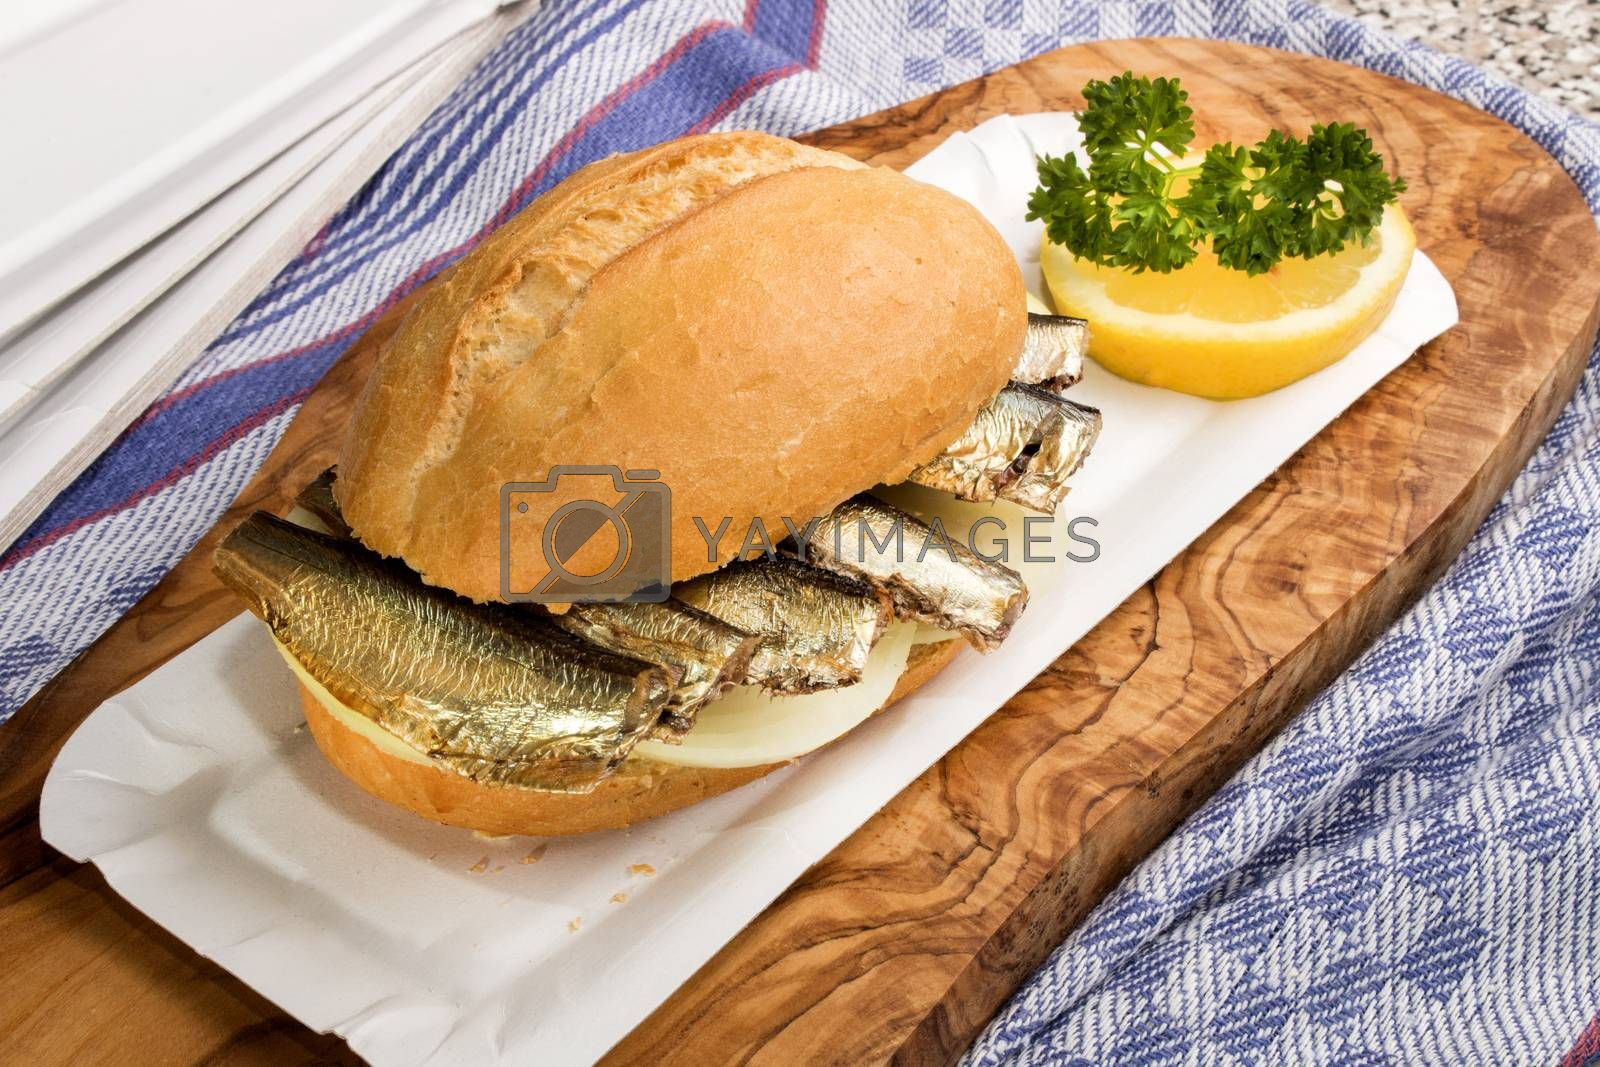 smoked sprats on a bread roll and slice onion, lemon with parsley